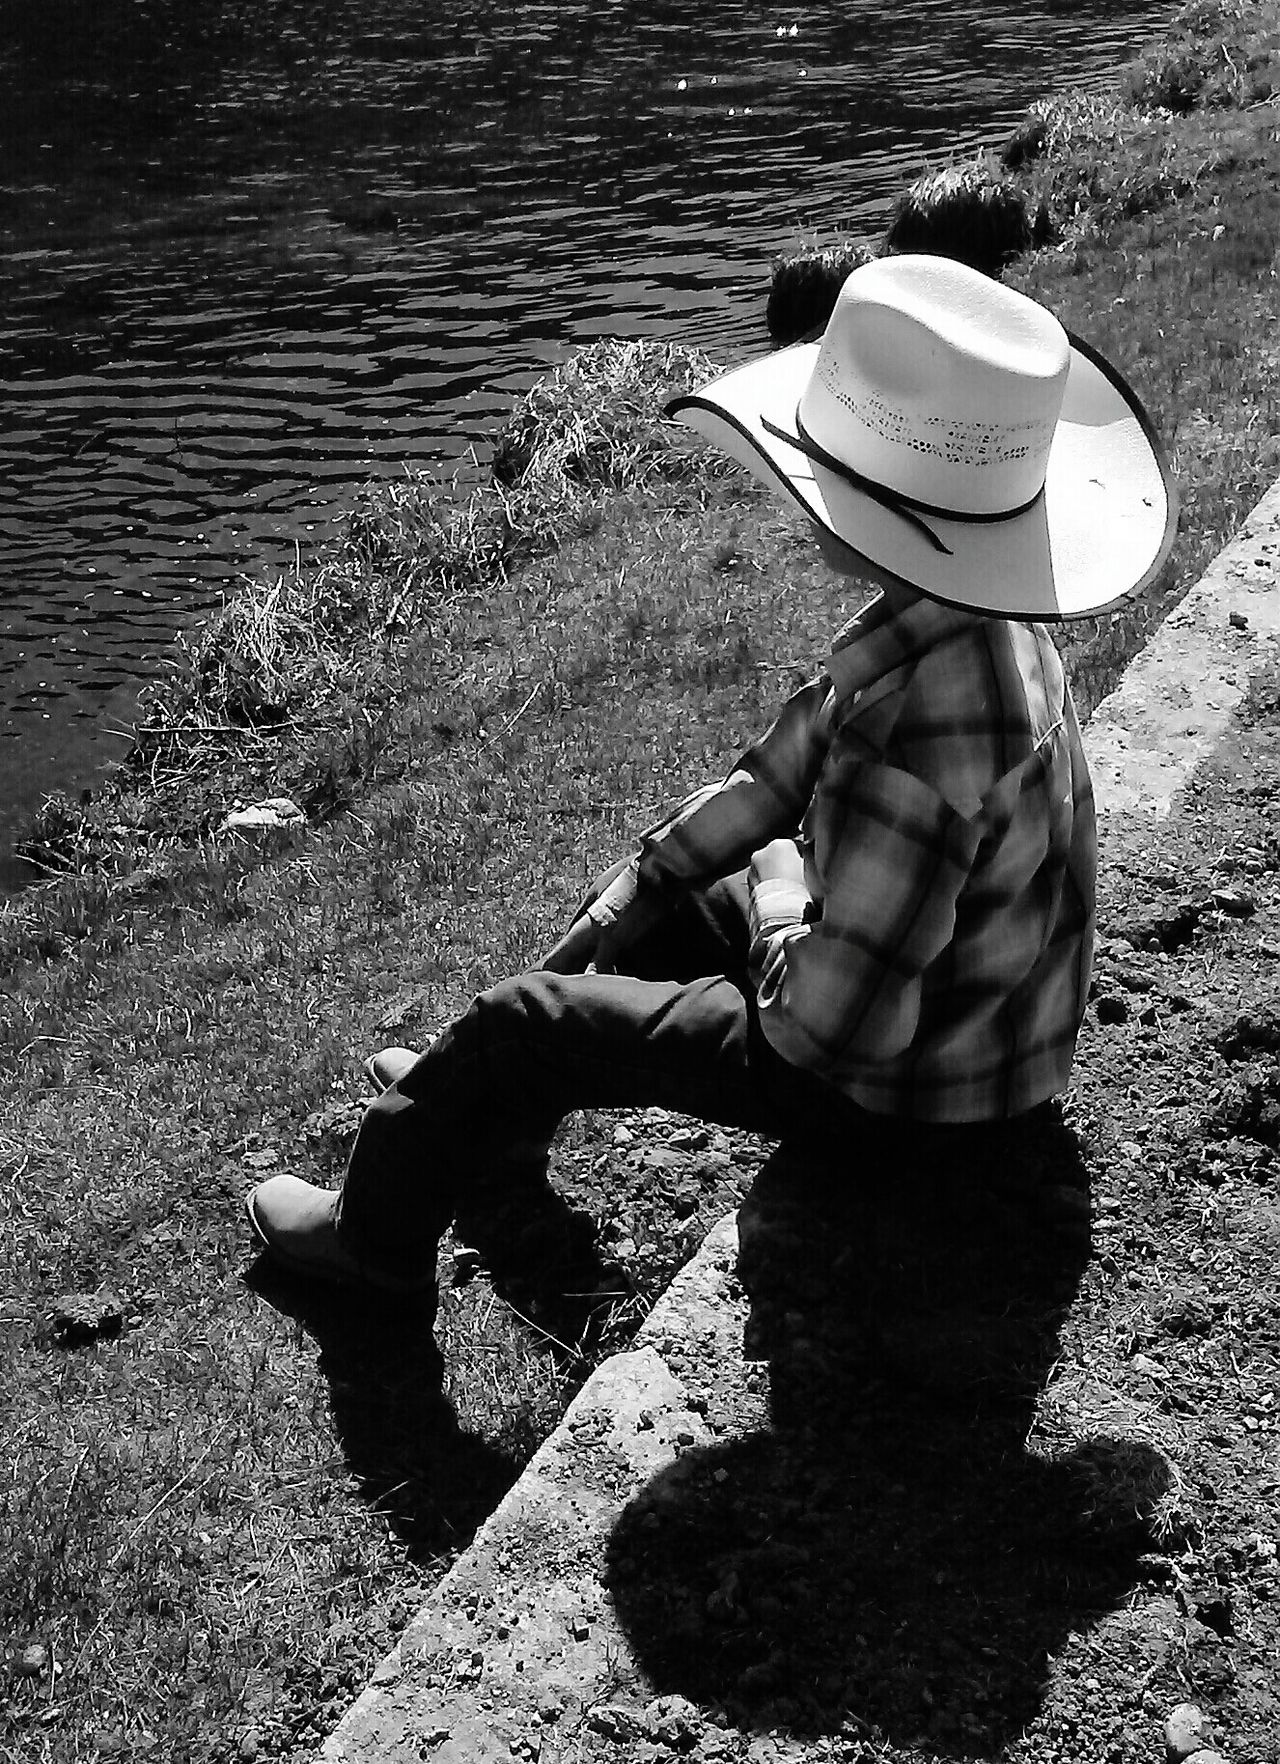 Little Cowboy Hat One Person Straw Hat Sun Hat Sitting Water Outdoors Real People Childhood